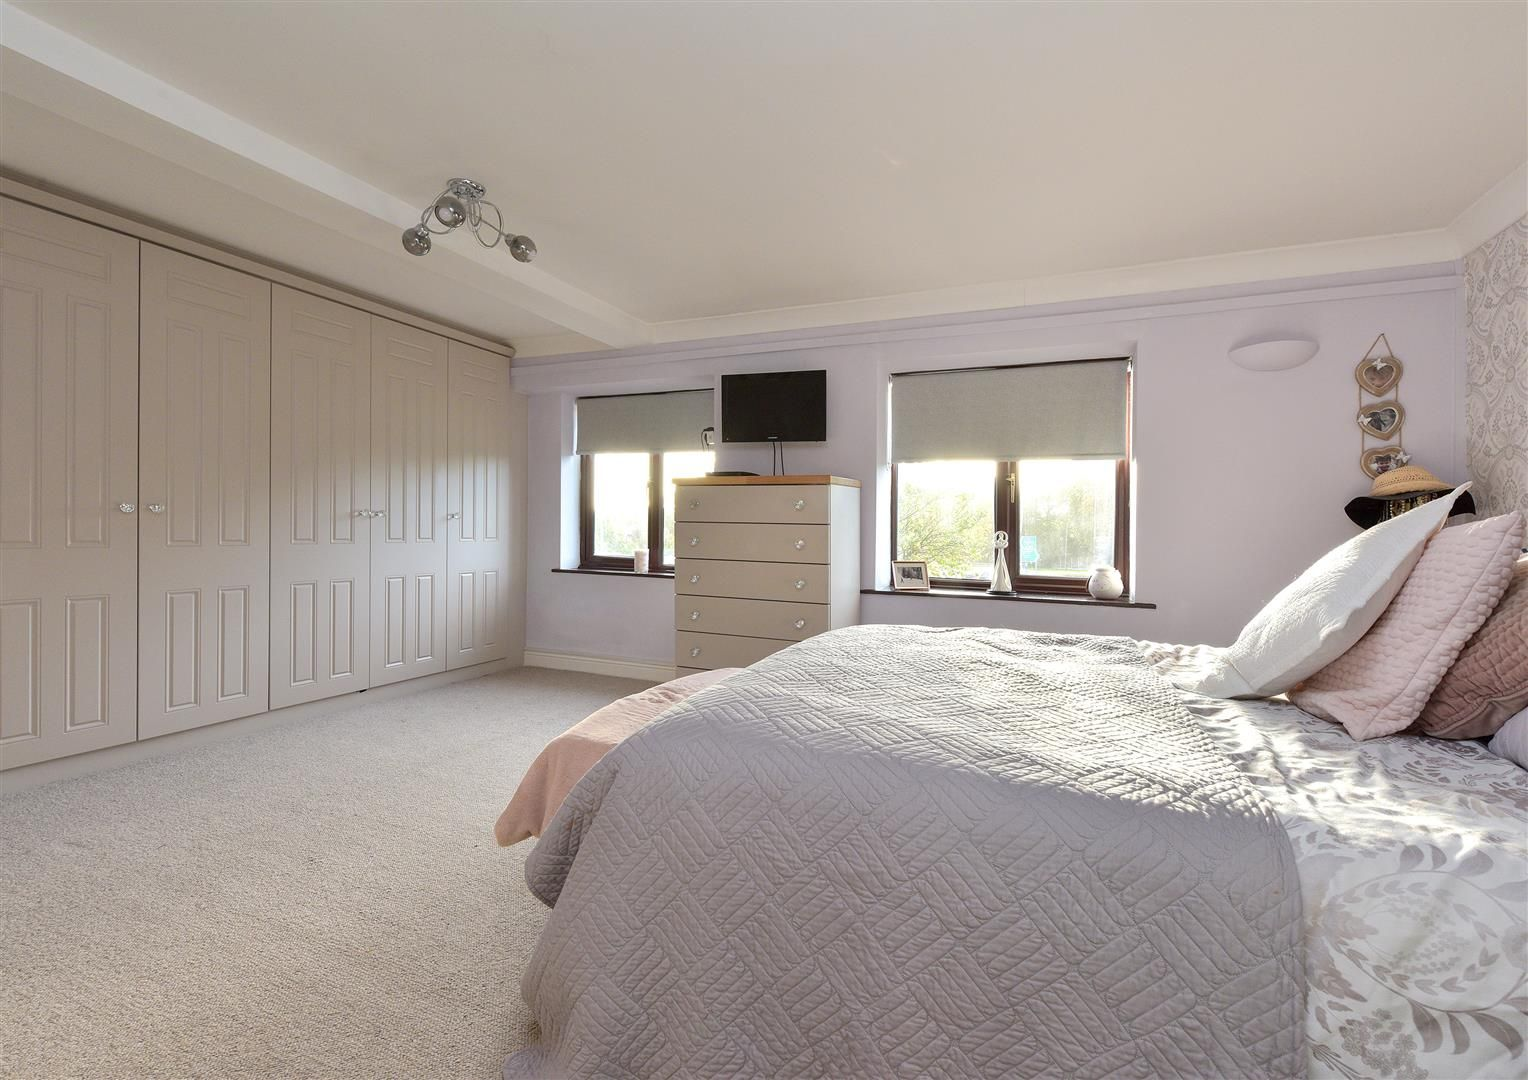 3 bed semi-detached for sale in Hayley Green  - Property Image 14